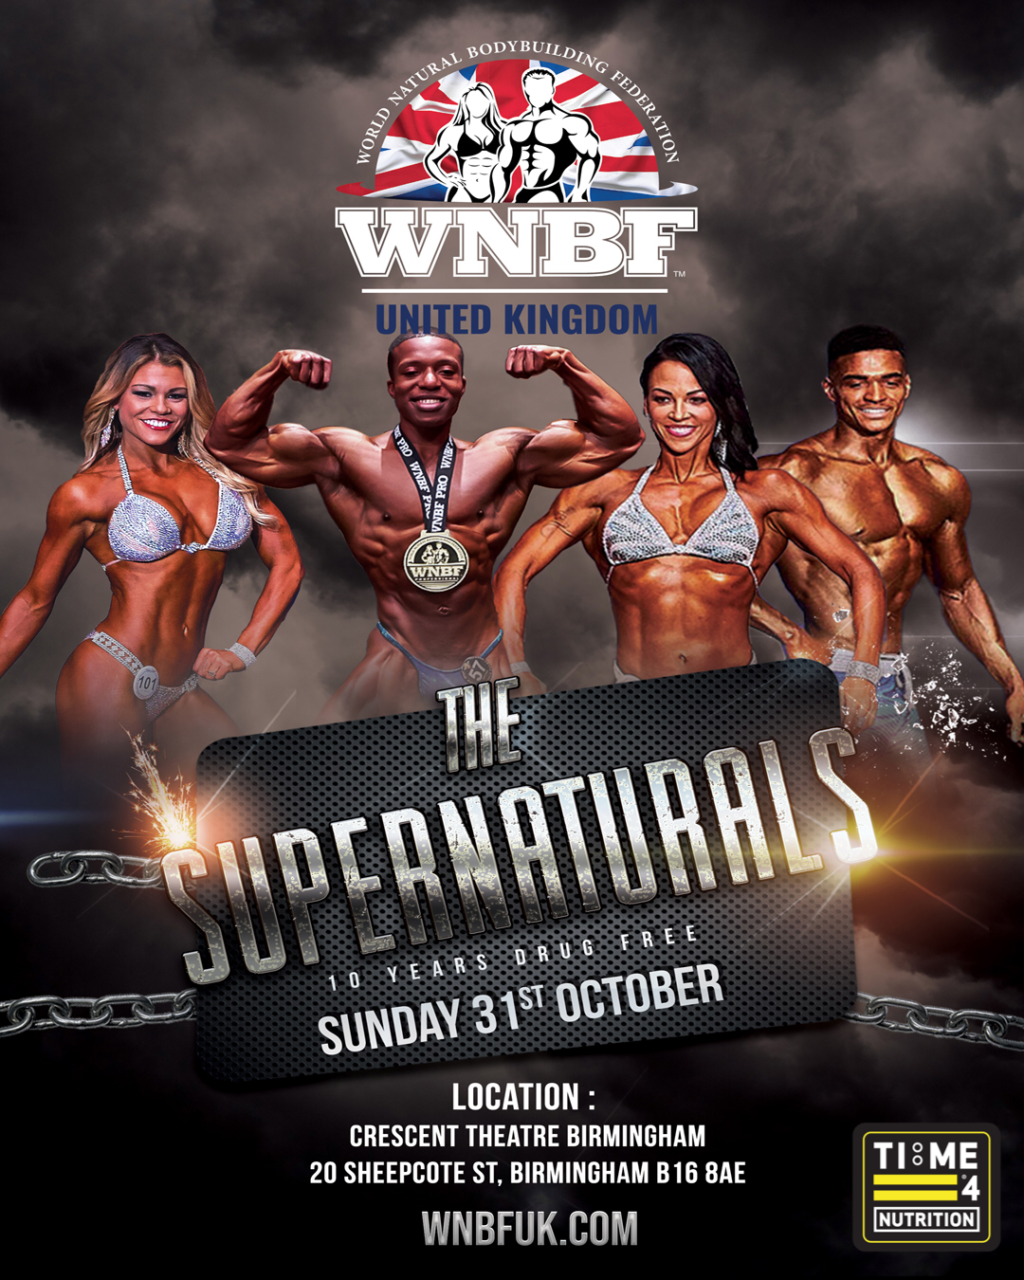 test TIME 4 NUTRITION ARE PROUD TO SPONSOR THE WNBF THE SUPERNATURALS OCTOBER 31ST 2021